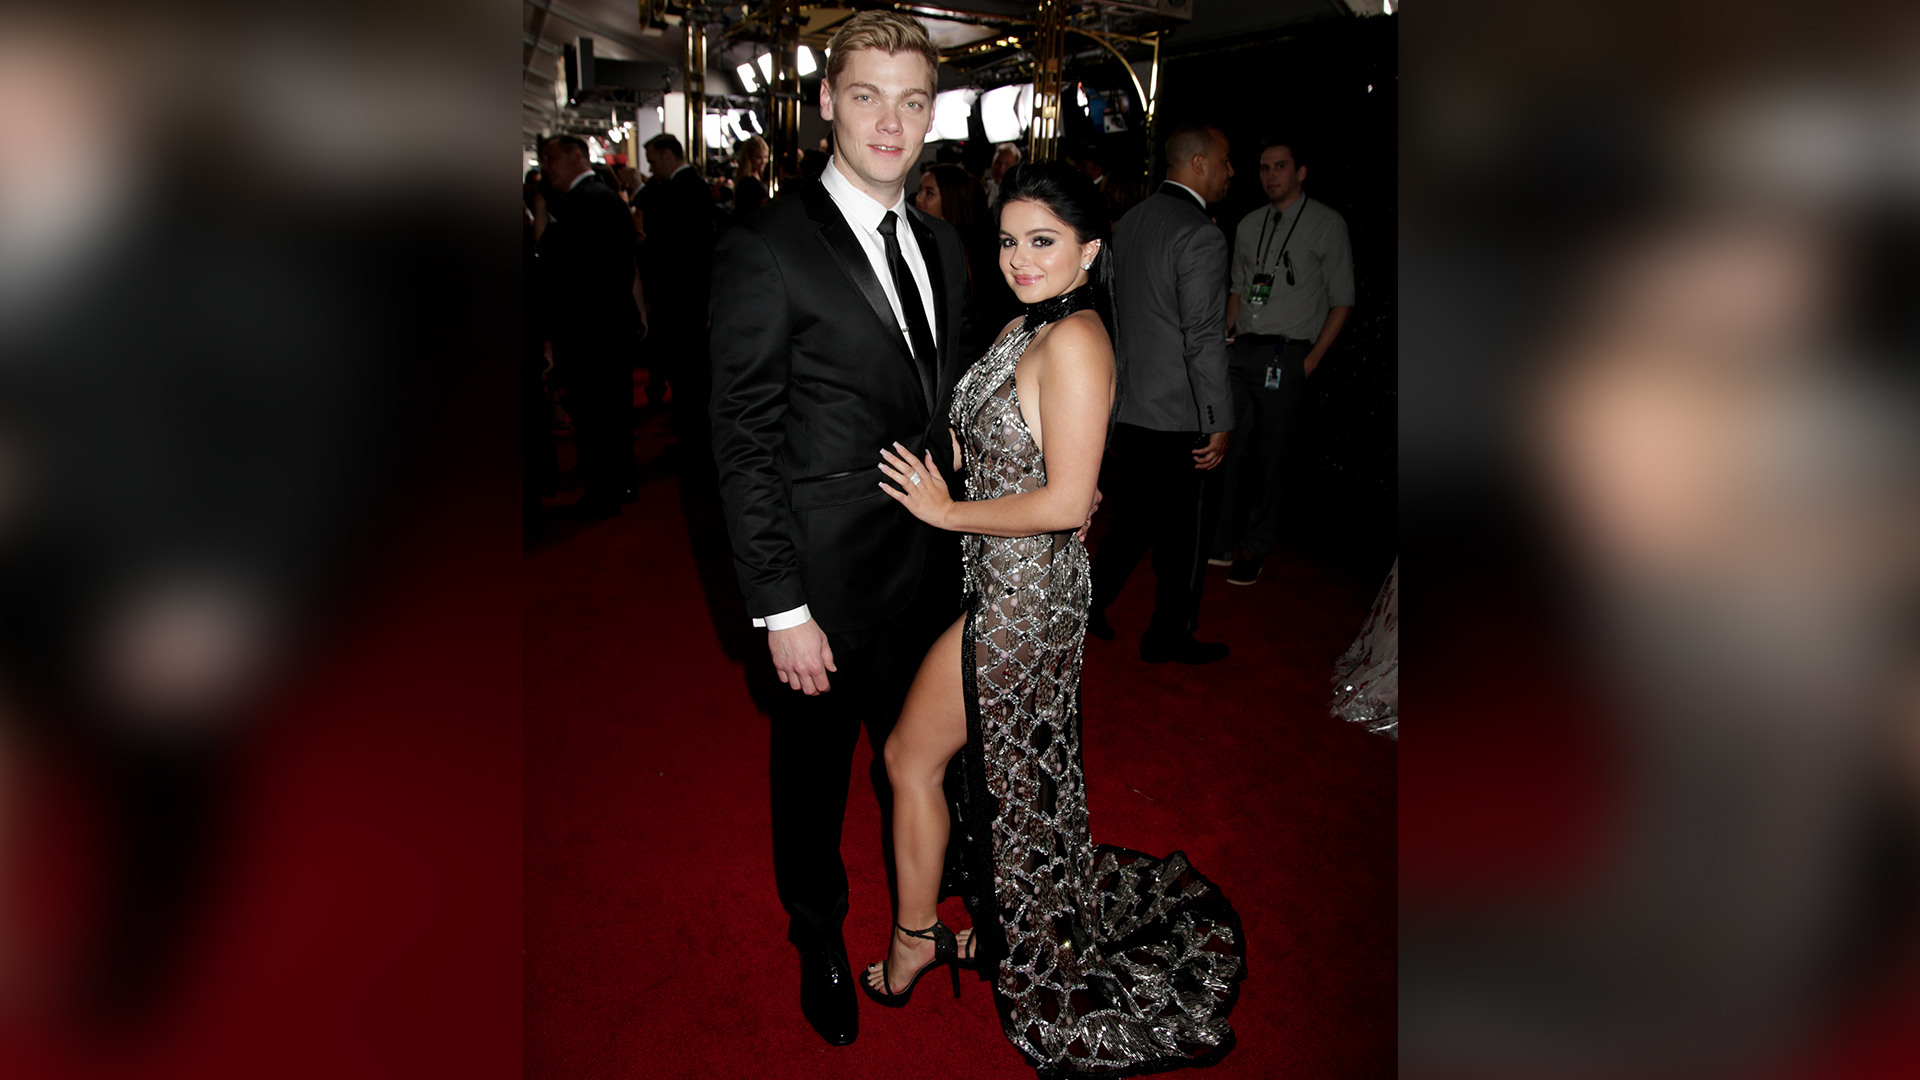 Ariel Winter from Modern Family and Levi Meaden